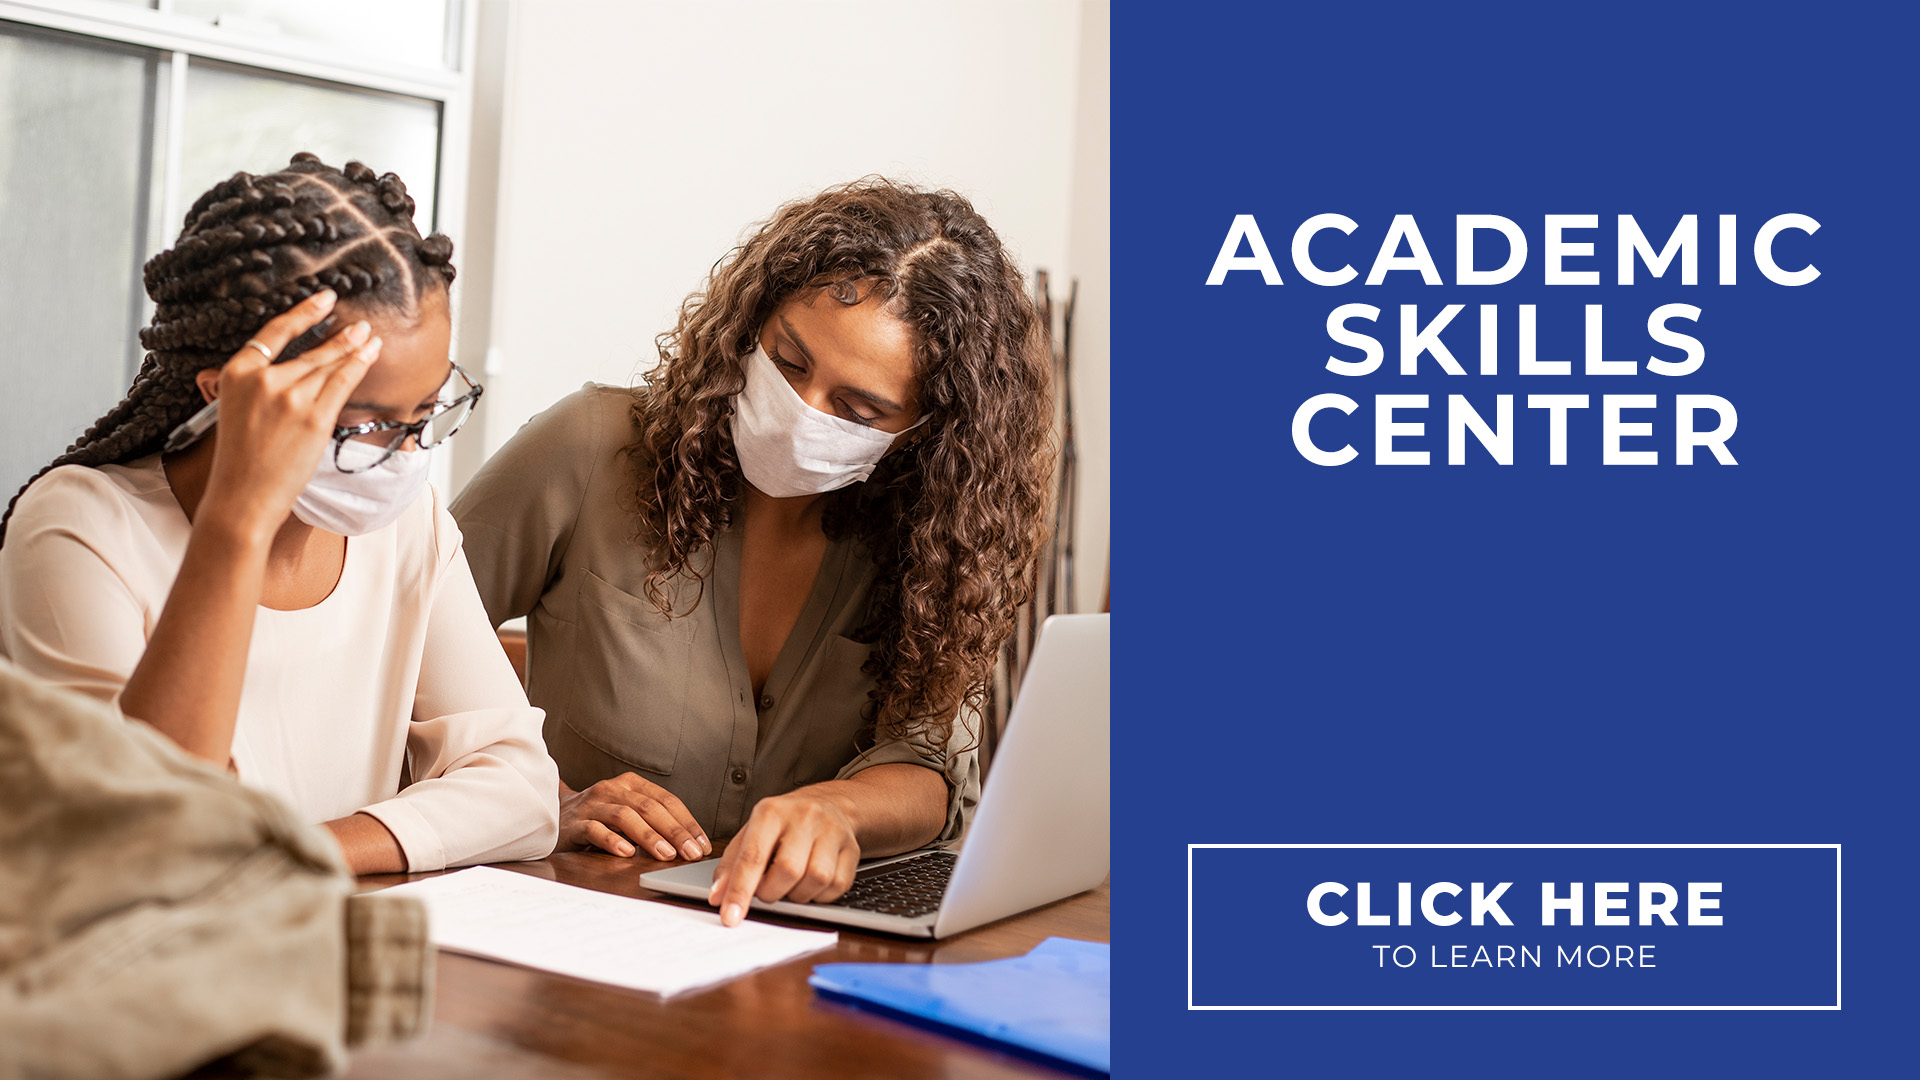 Academic Skills Center. Click here to learn more.